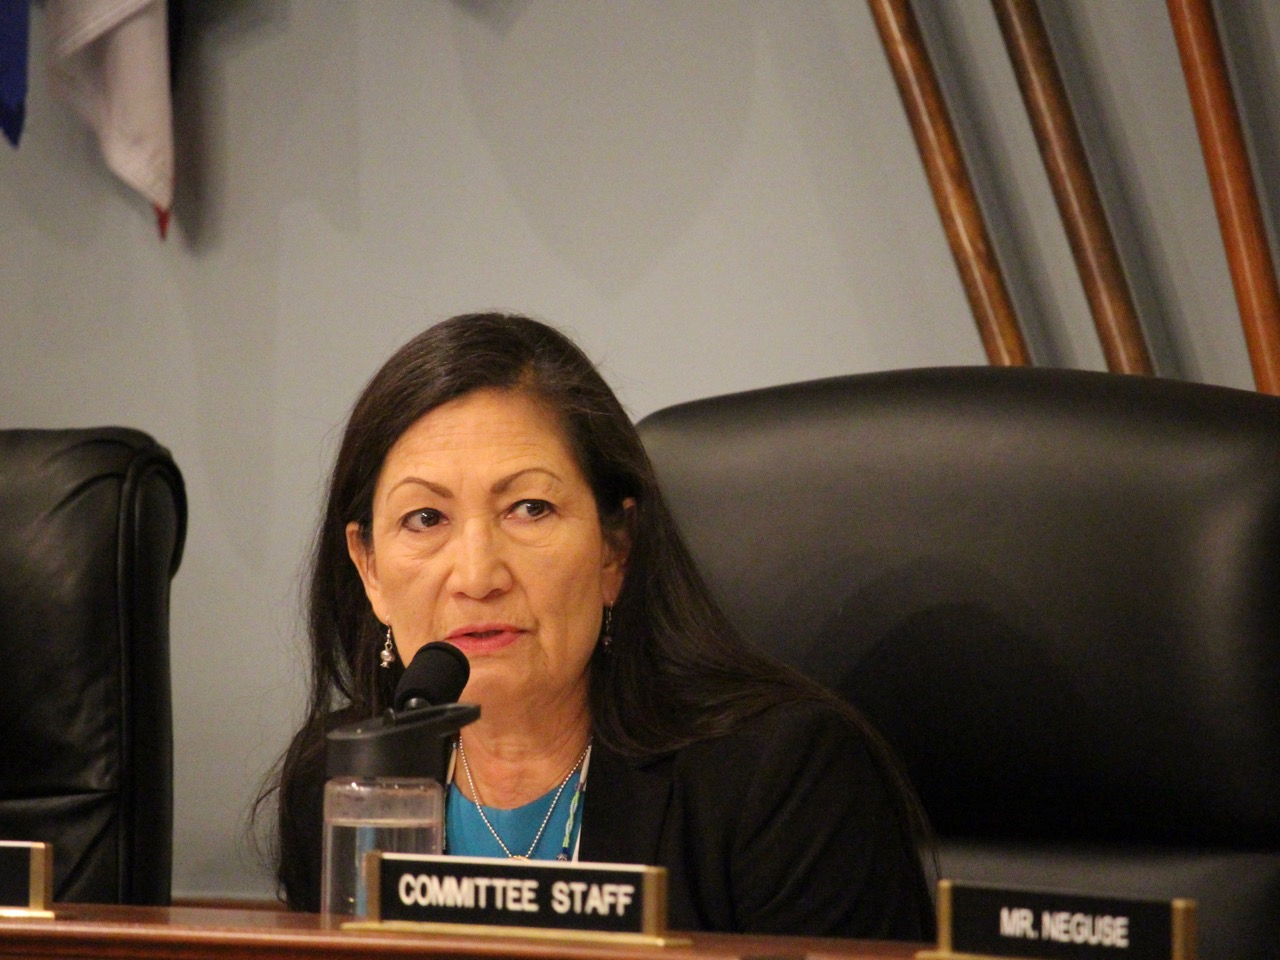 Mark Trahant: Native woman won't run for open U.S. Senate seat